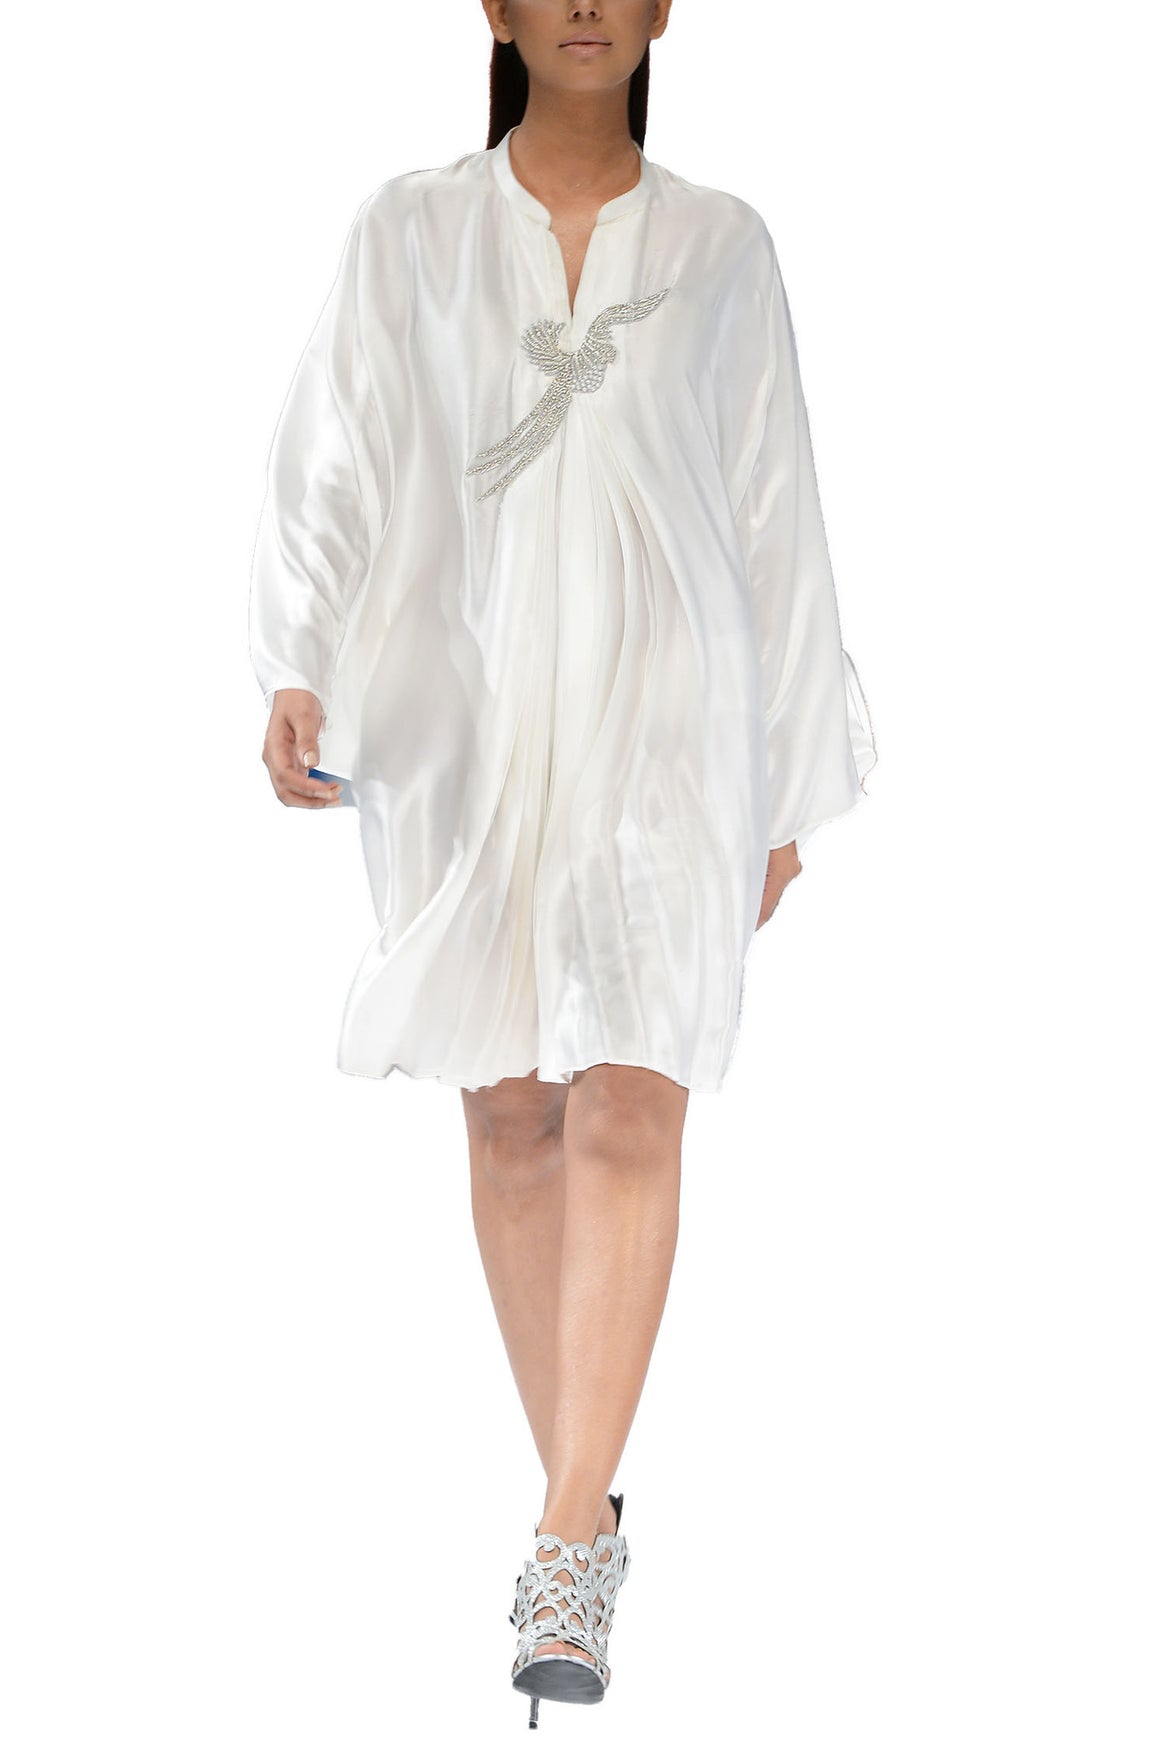 Deepak Perwani - Ivory-like White Charmeuse Pleated Dress With Bird Motif